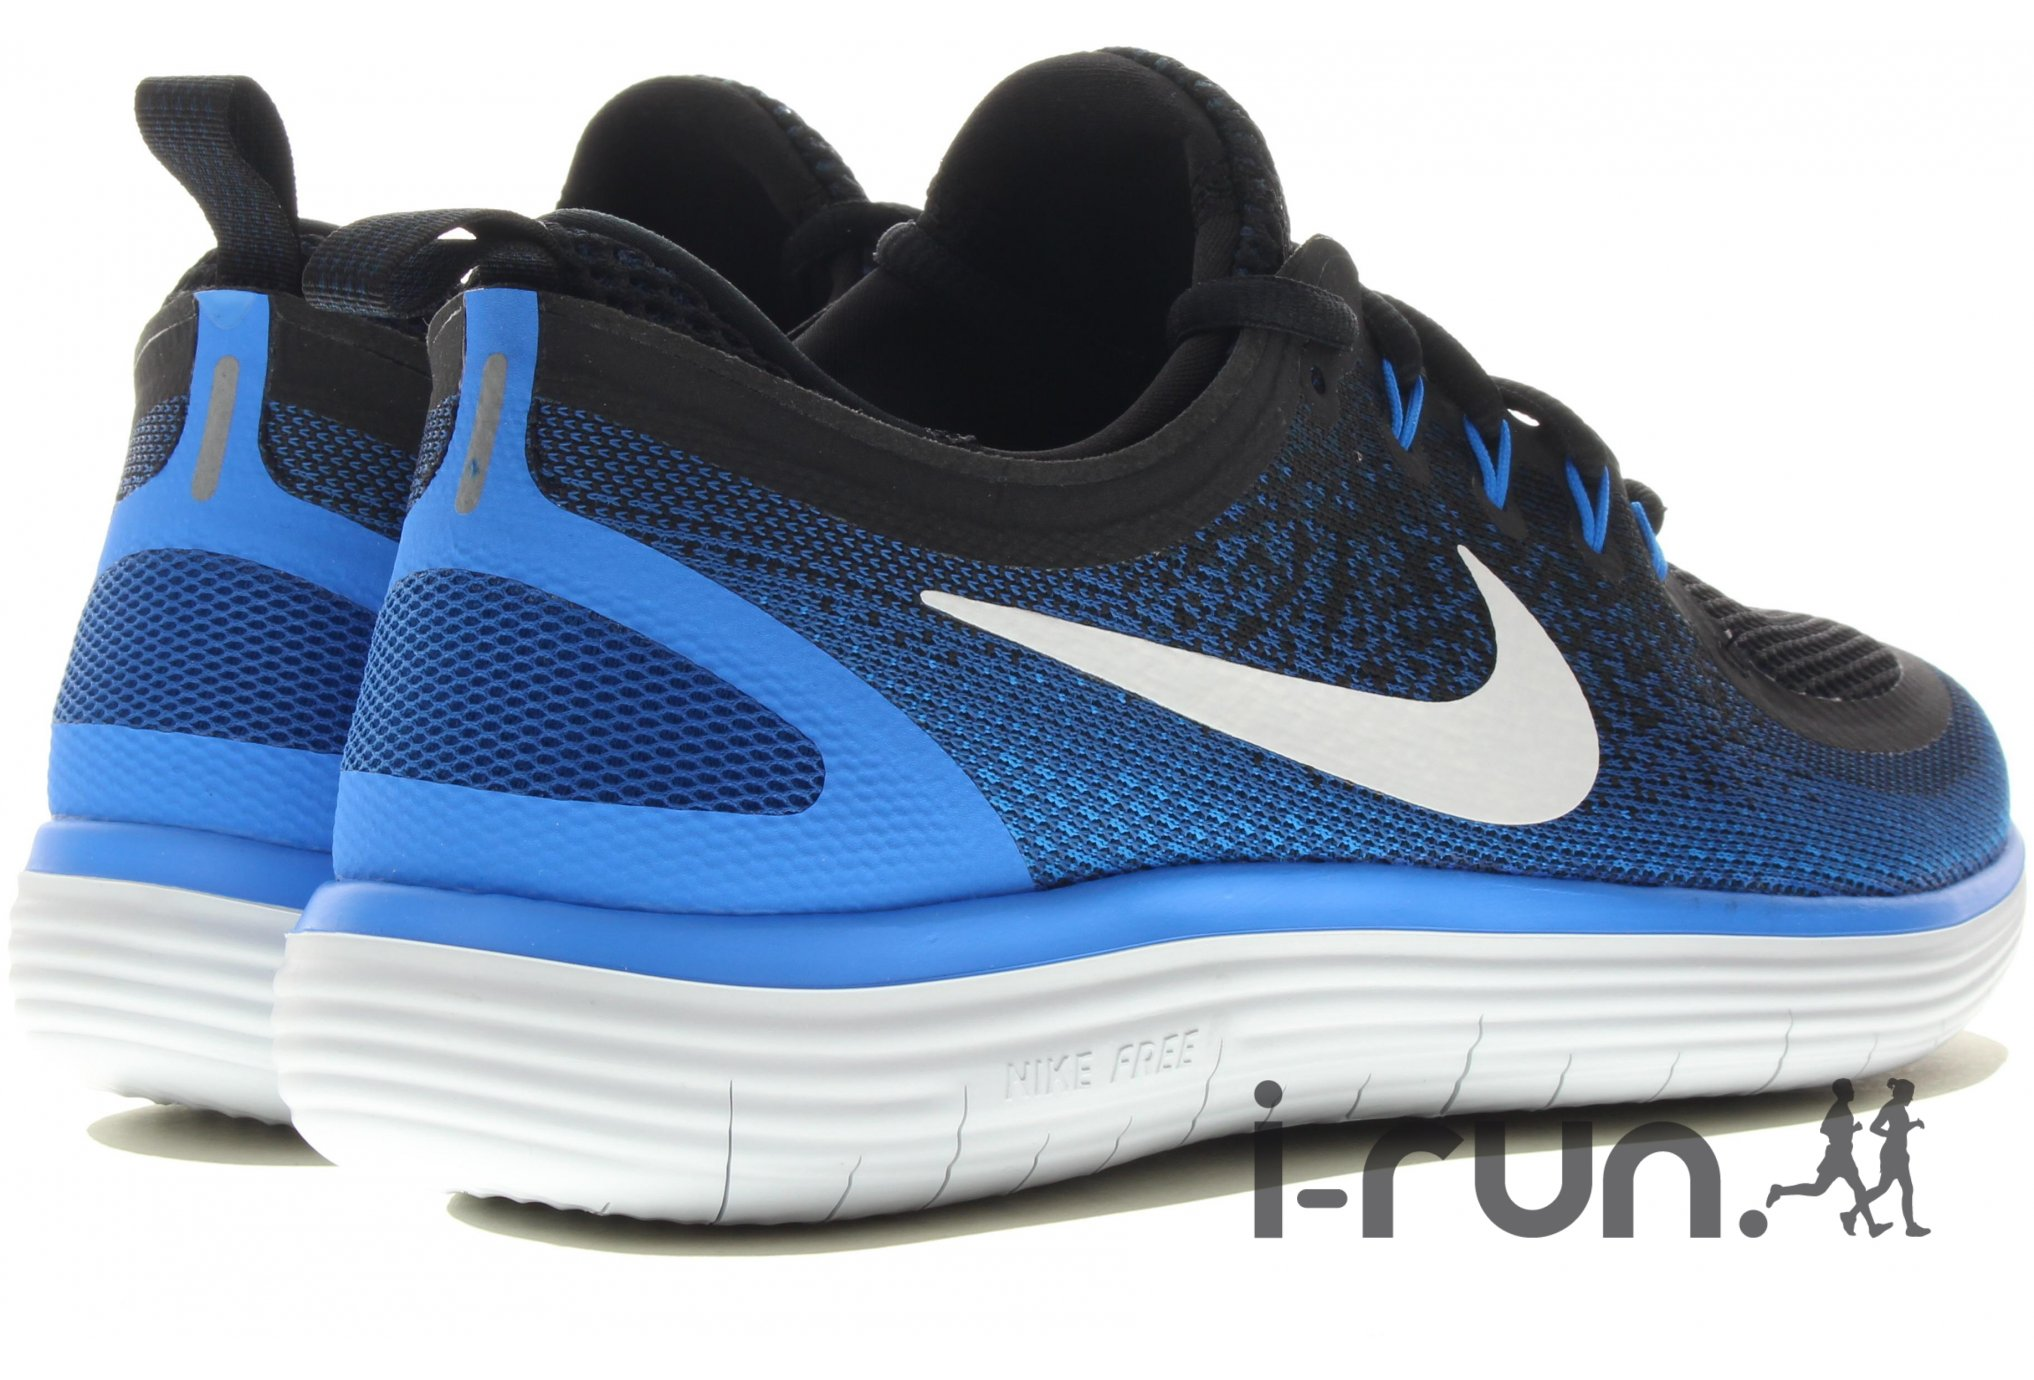 the best attitude f3049 d01e5 nike free rn distance 2 m chaussures homme 142296 1 sz